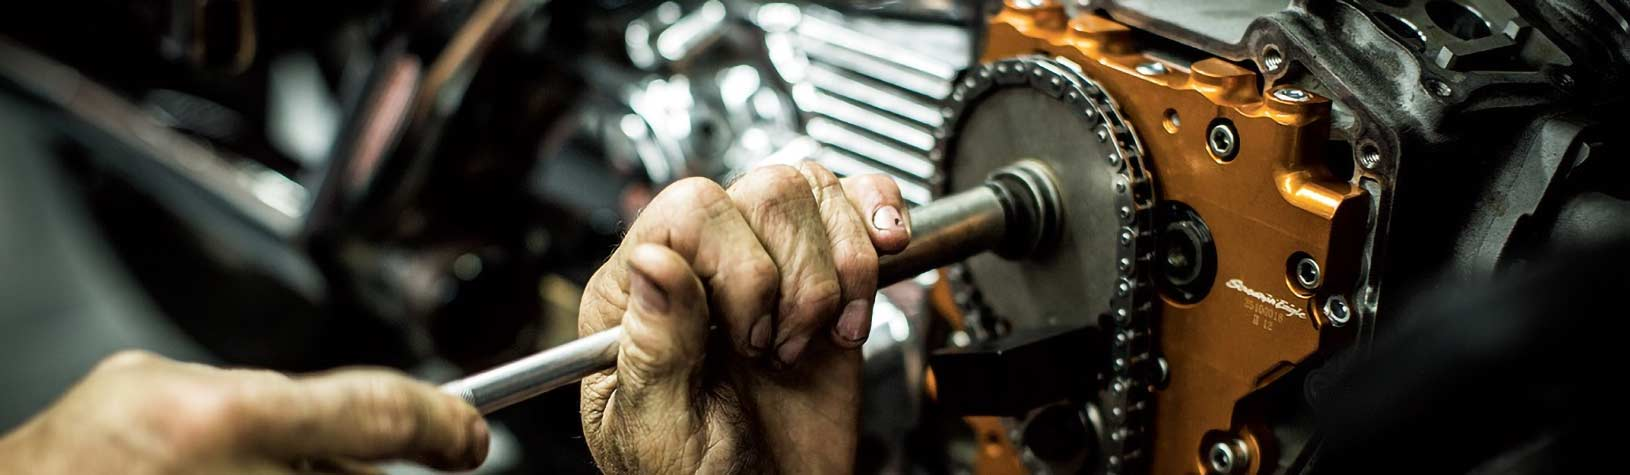 A closeup of a hand turning a tool on an engine.